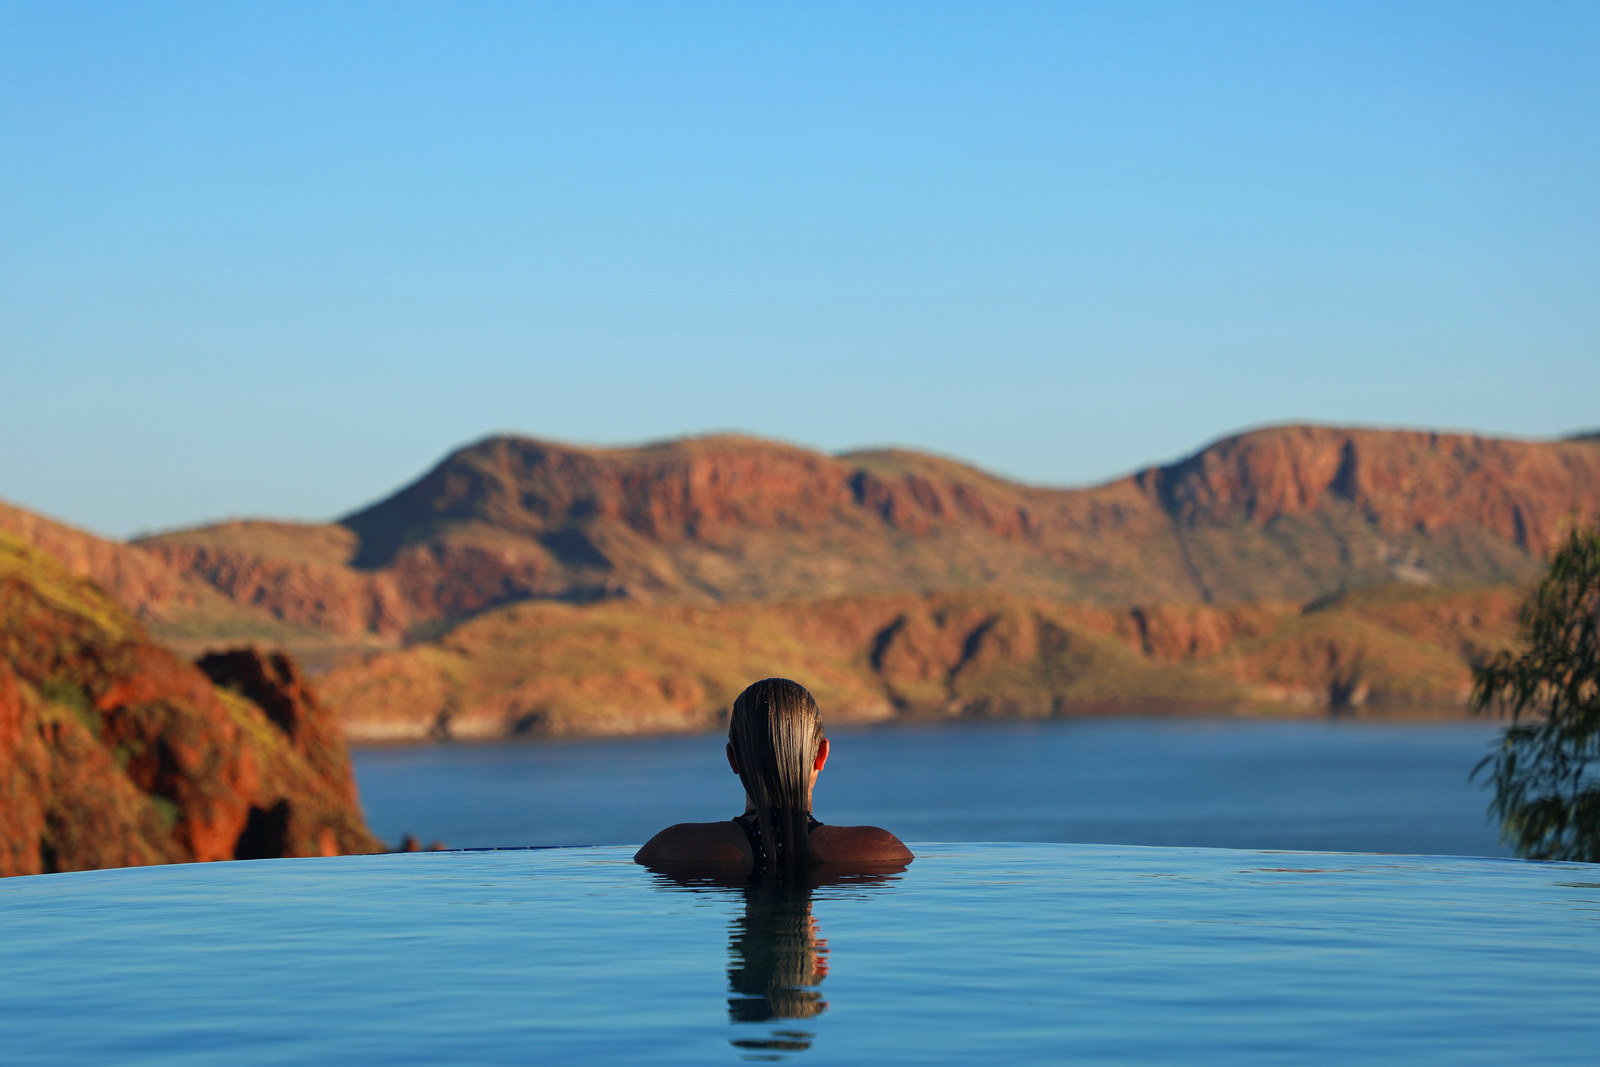 Buzzfeed - Kimberley Spirit Tours hosted the ladies from Buzzfeed and assisted them with their article '36 Reasons Why You Should Put The Kimberley On Top Of Your Bucket List'. Click here to read this article.